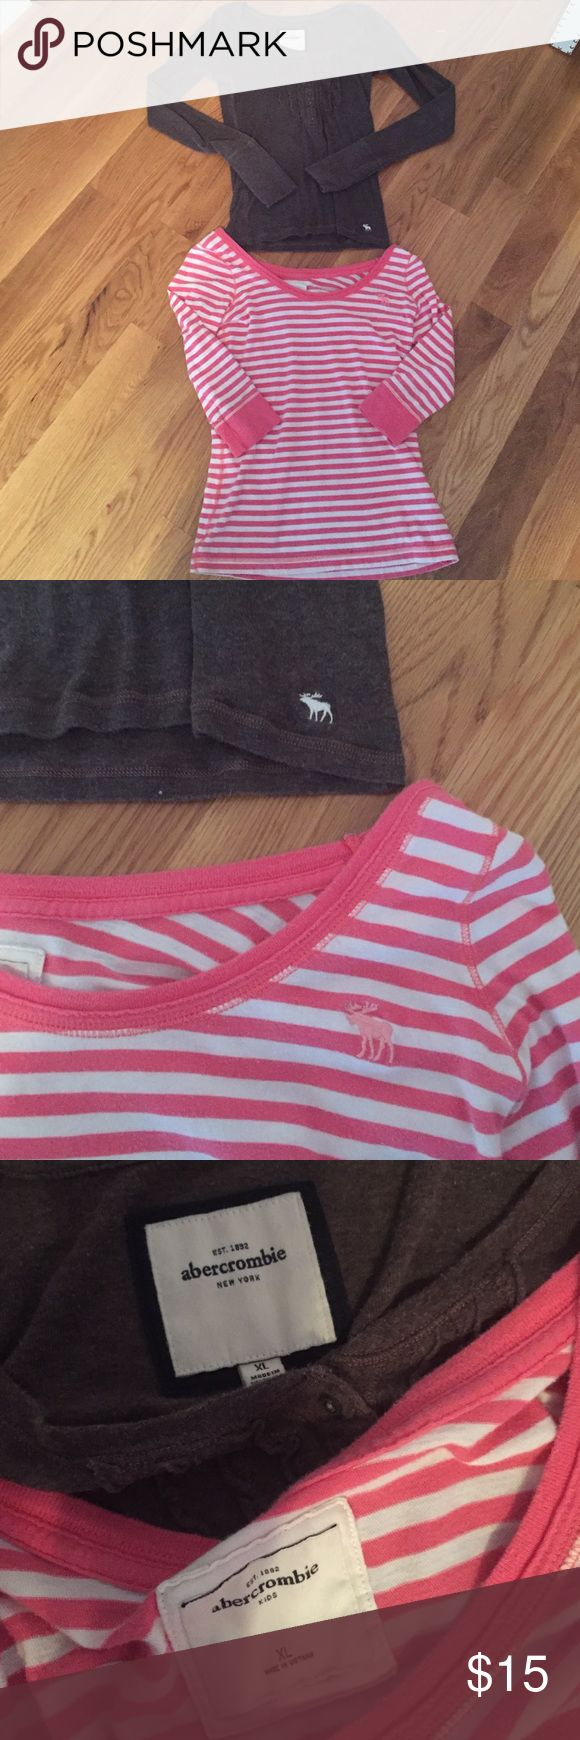 Abercrombie shirts XL in kids, so fits probably a XS or S in women's. First shirt is pink and white stripes. Second is brown with buttons, and a v neck that cuts down kind of low. Both are tight fitting. The brown fits a little smaller the the pink and white. Lightly worn, but still in very good condition. Feel free to make offers! Abercrombie & Fitch Tops Blouses